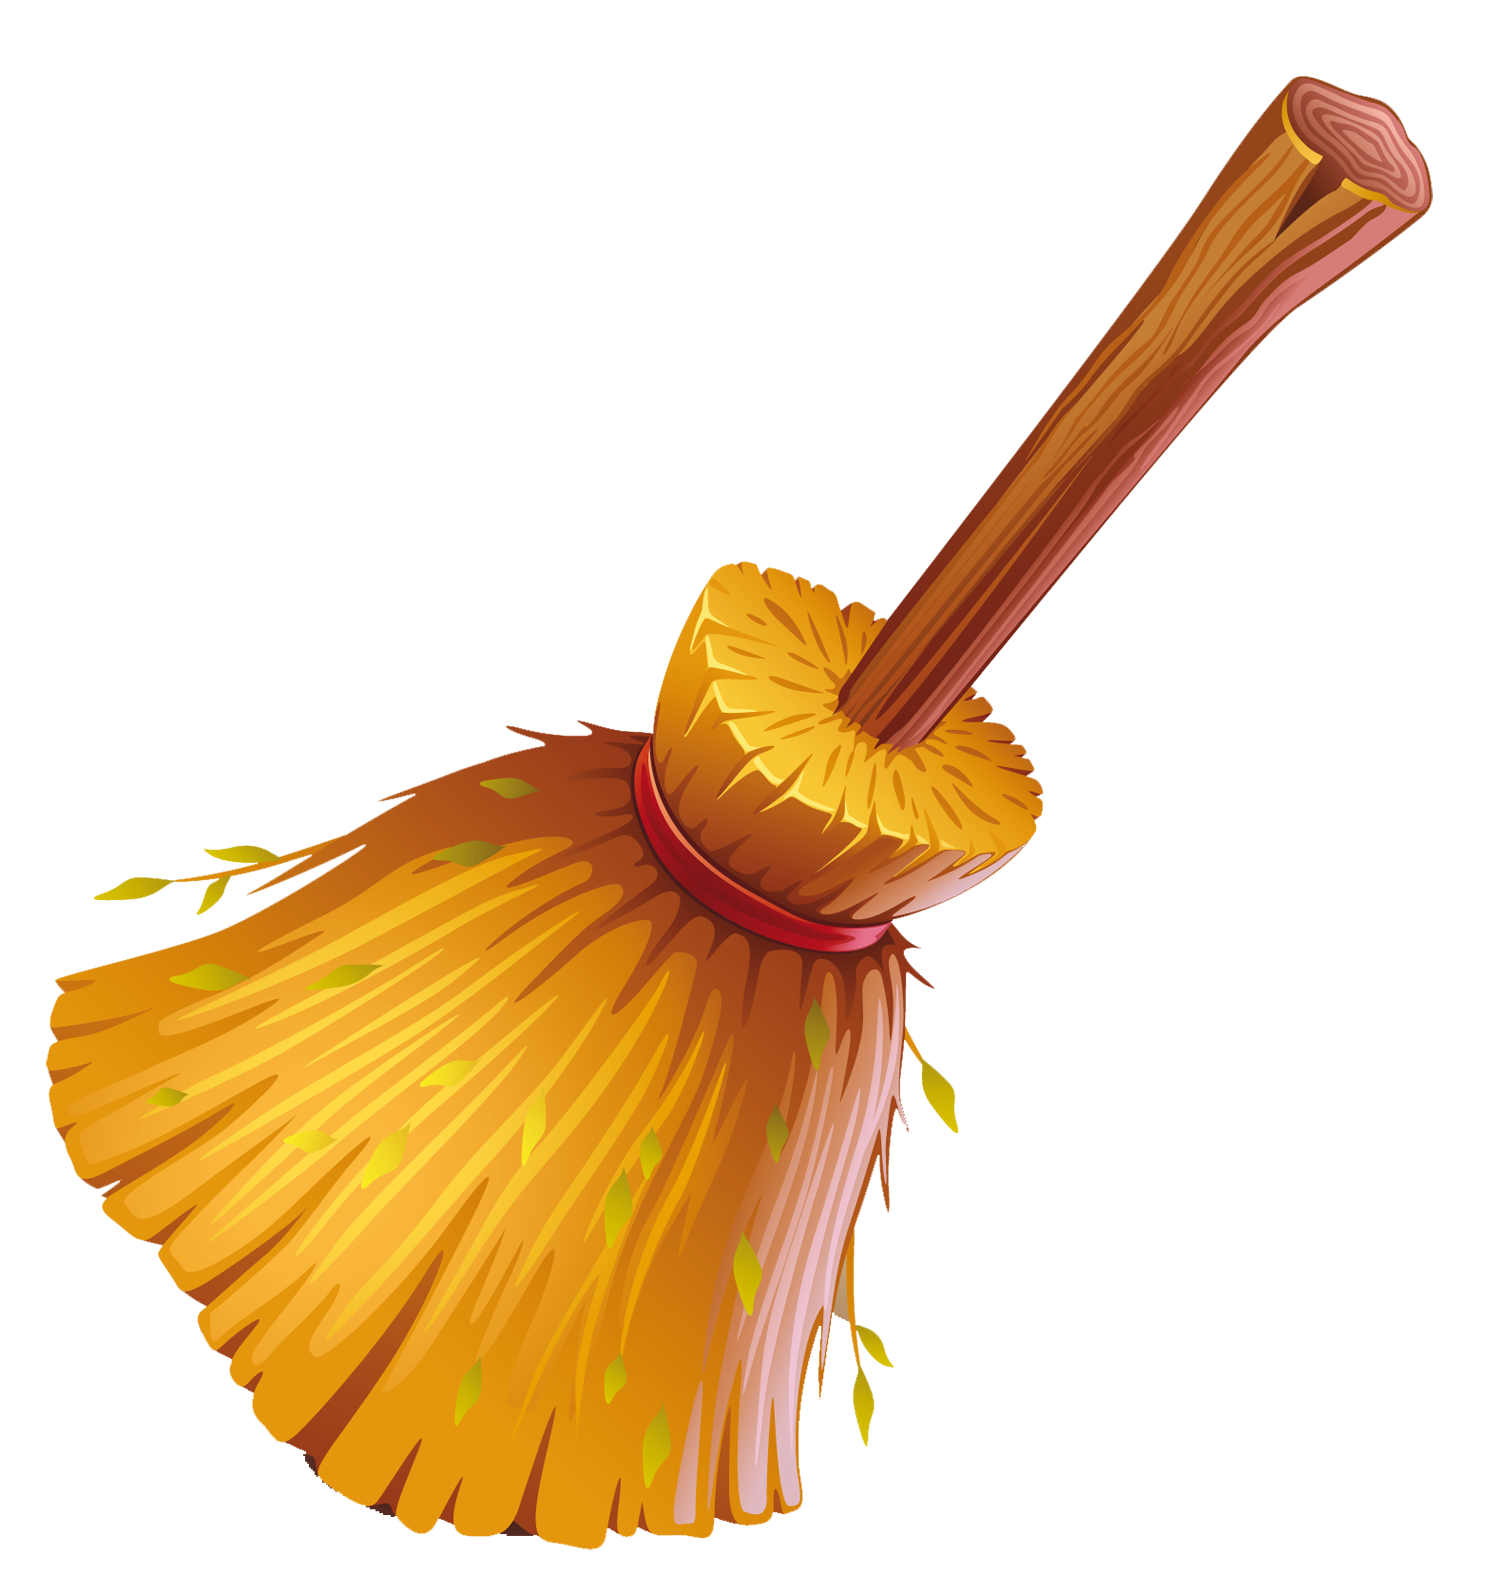 Broom Clipart Free Clipart Image-Broom Clipart Free Clipart Image-3